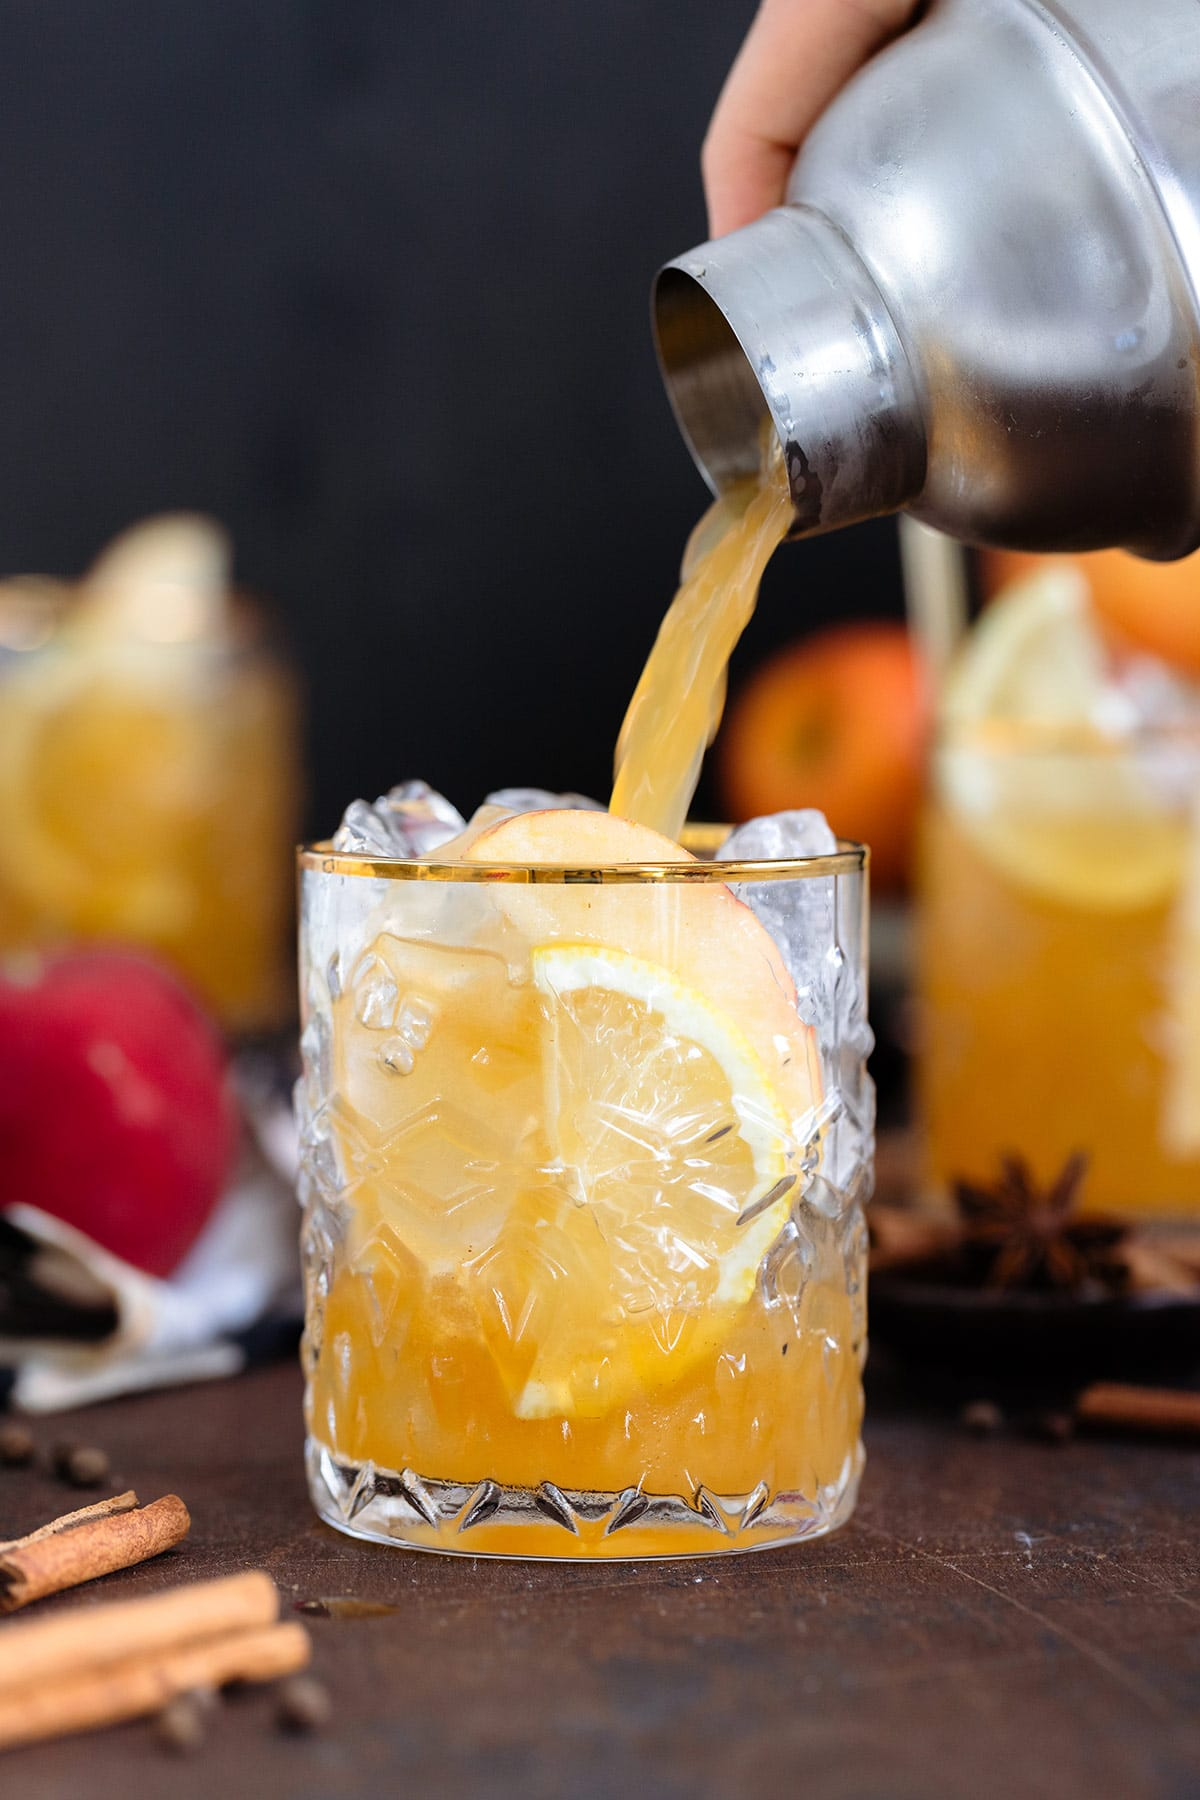 Bourbon cocktail being poured over ice into a glass with a gold rim on a dark wooden background.